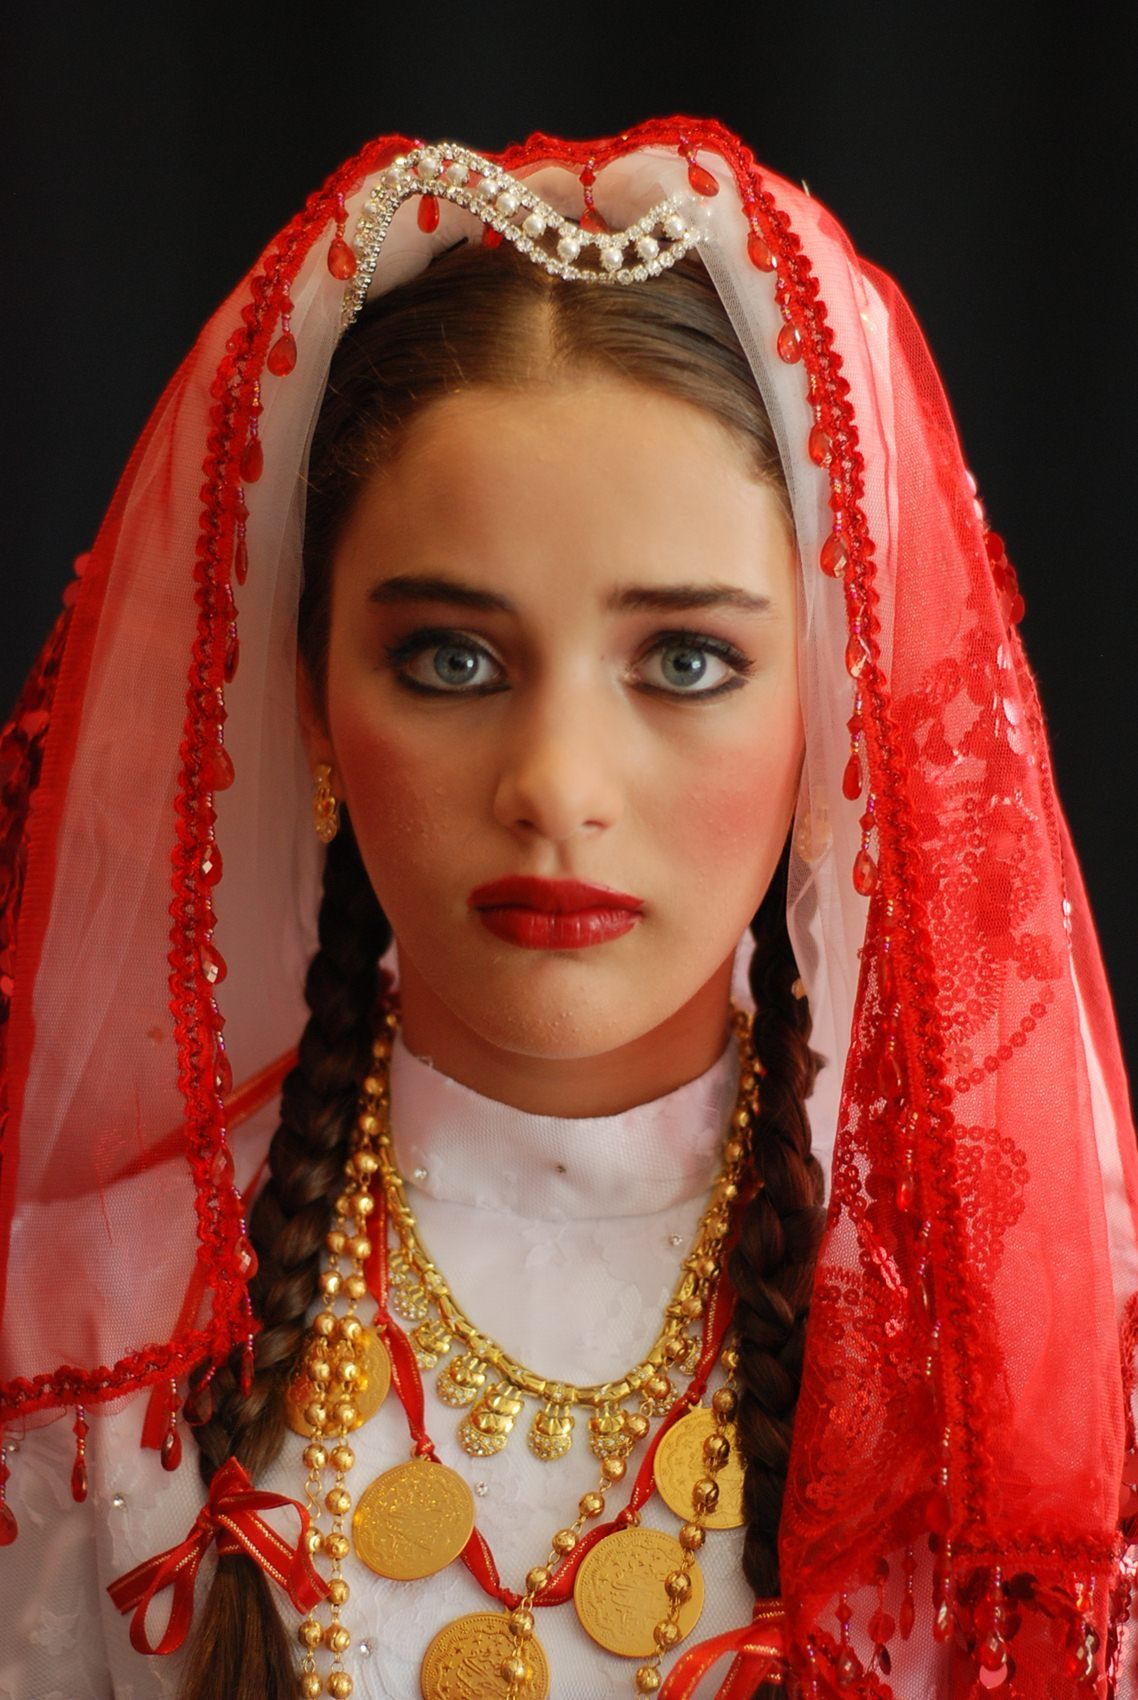 Child Bride (Kucuk Gelin) Tv Series